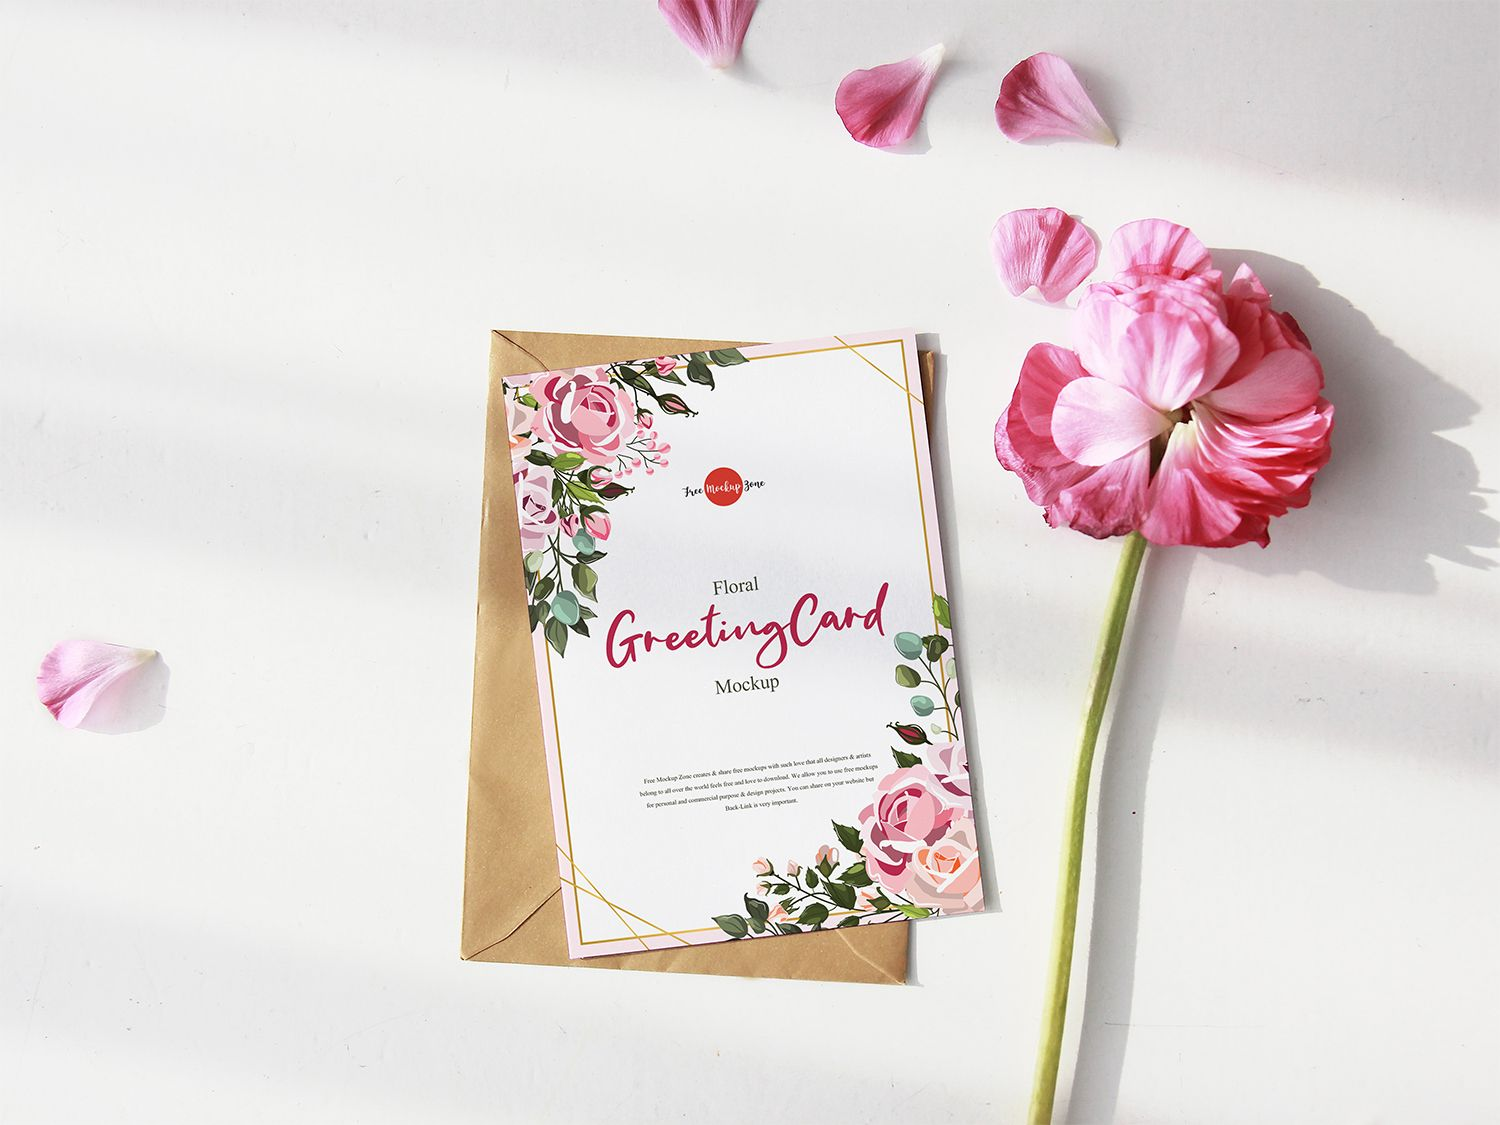 Free Greeting Card Mockup With Pink Flower Psd Free Mockup Free Greeting Cards Mockup Free Psd Free Mockup